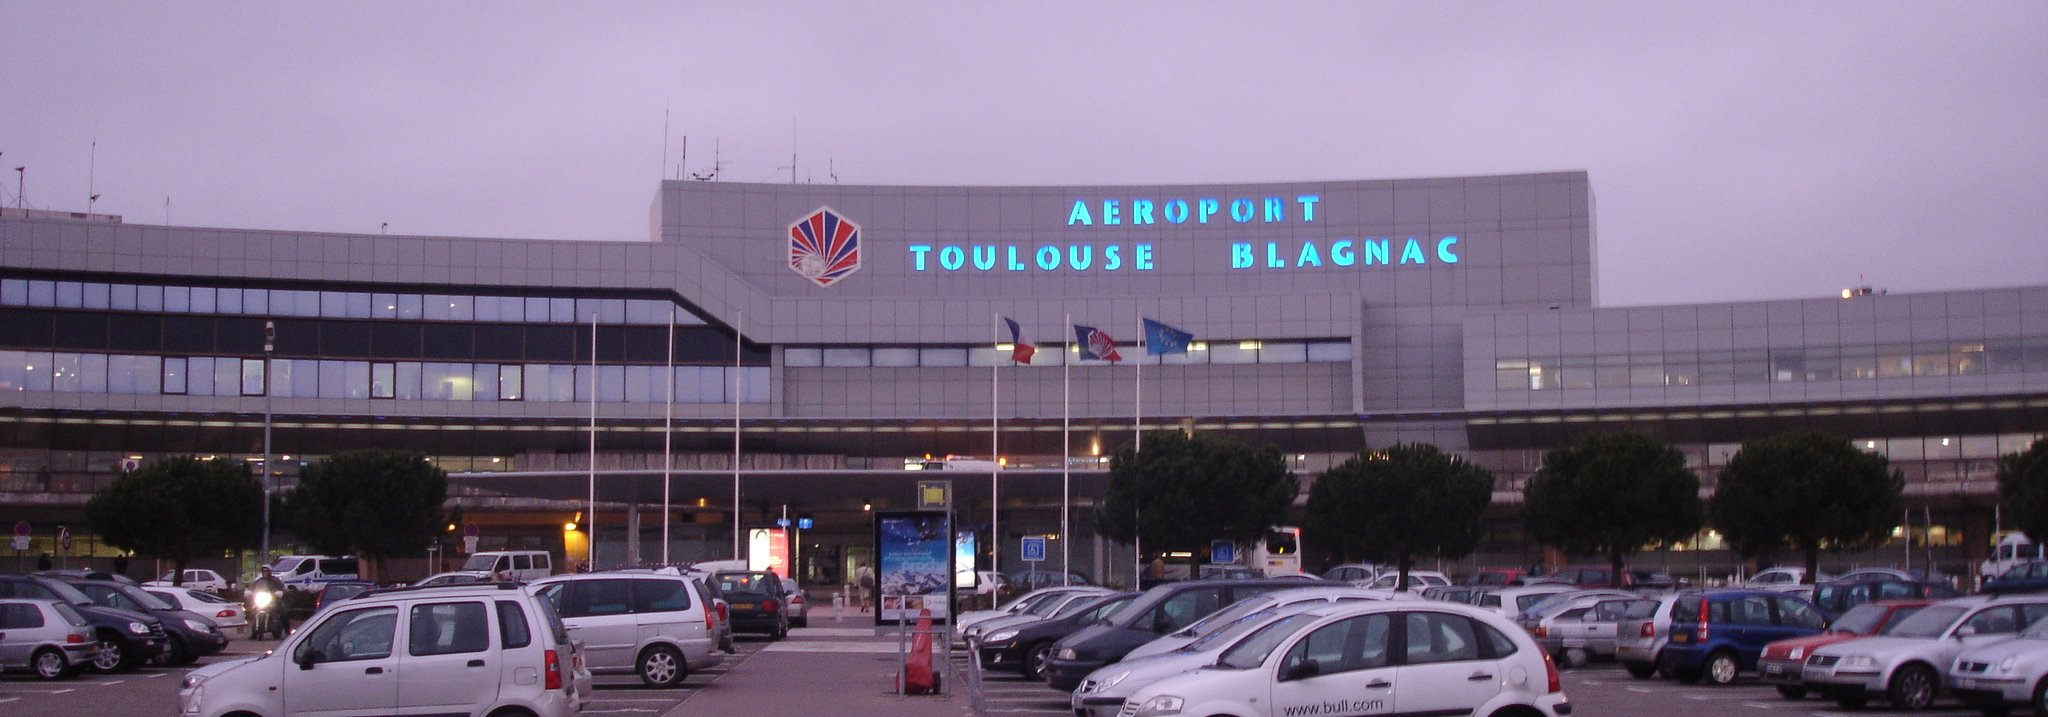 Blagnac France  City pictures : France Toulouse Blagnac Aéroport 2006 01 08